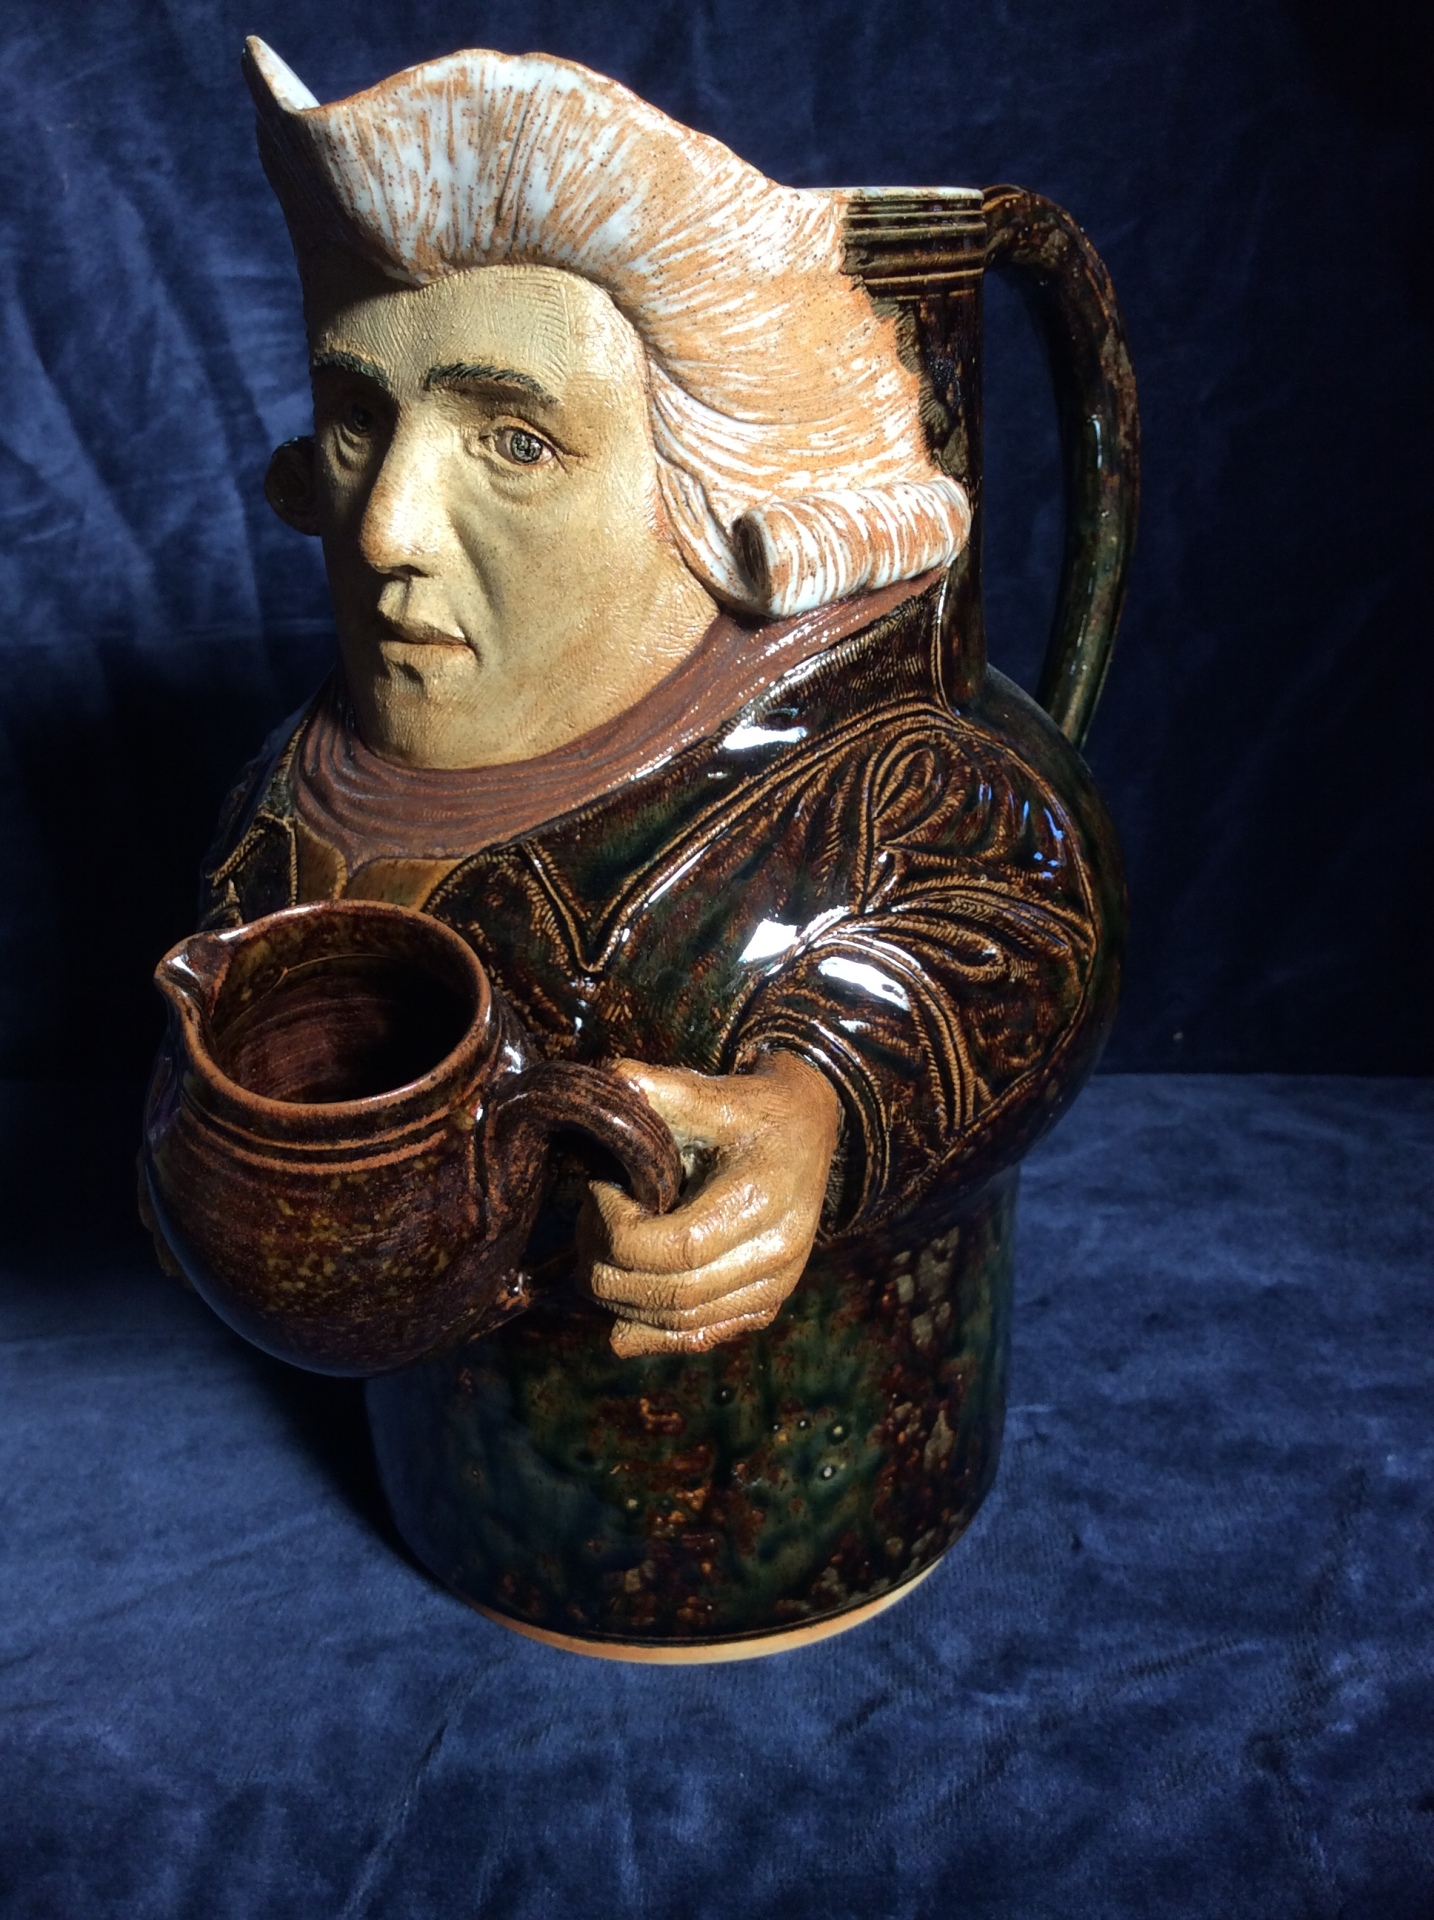 modelled jug of Josiah Wedgewood 38 cms high